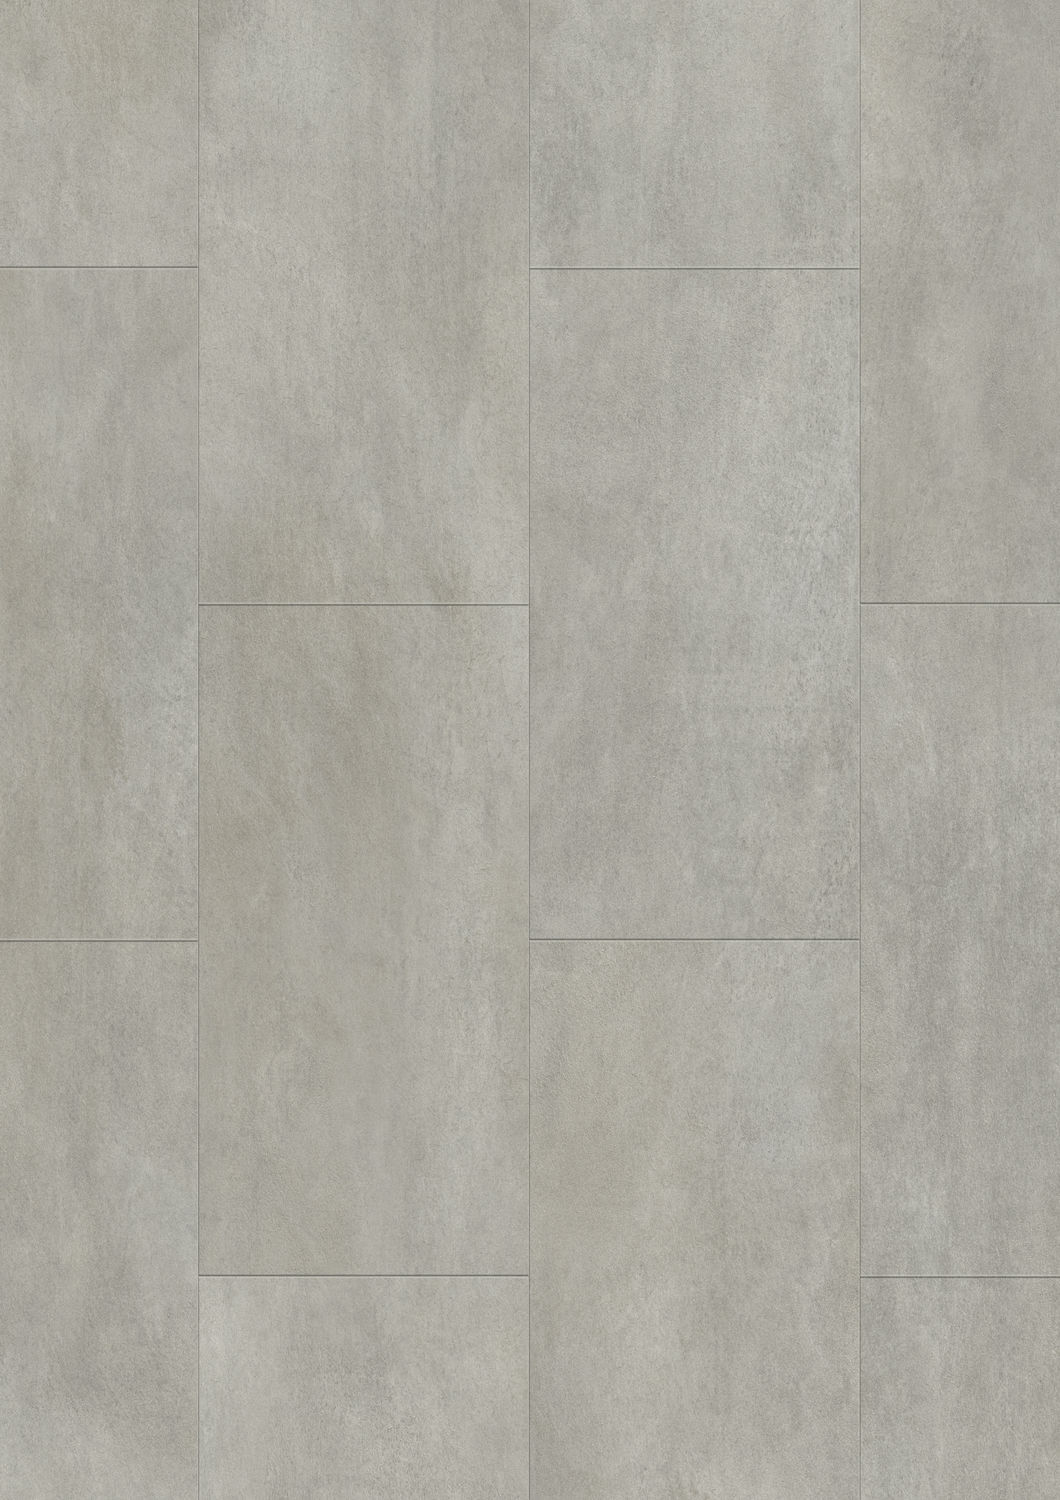 Vinyl Flooring Residential Tile High Gloss Warm Grey Concrete V2120 40050